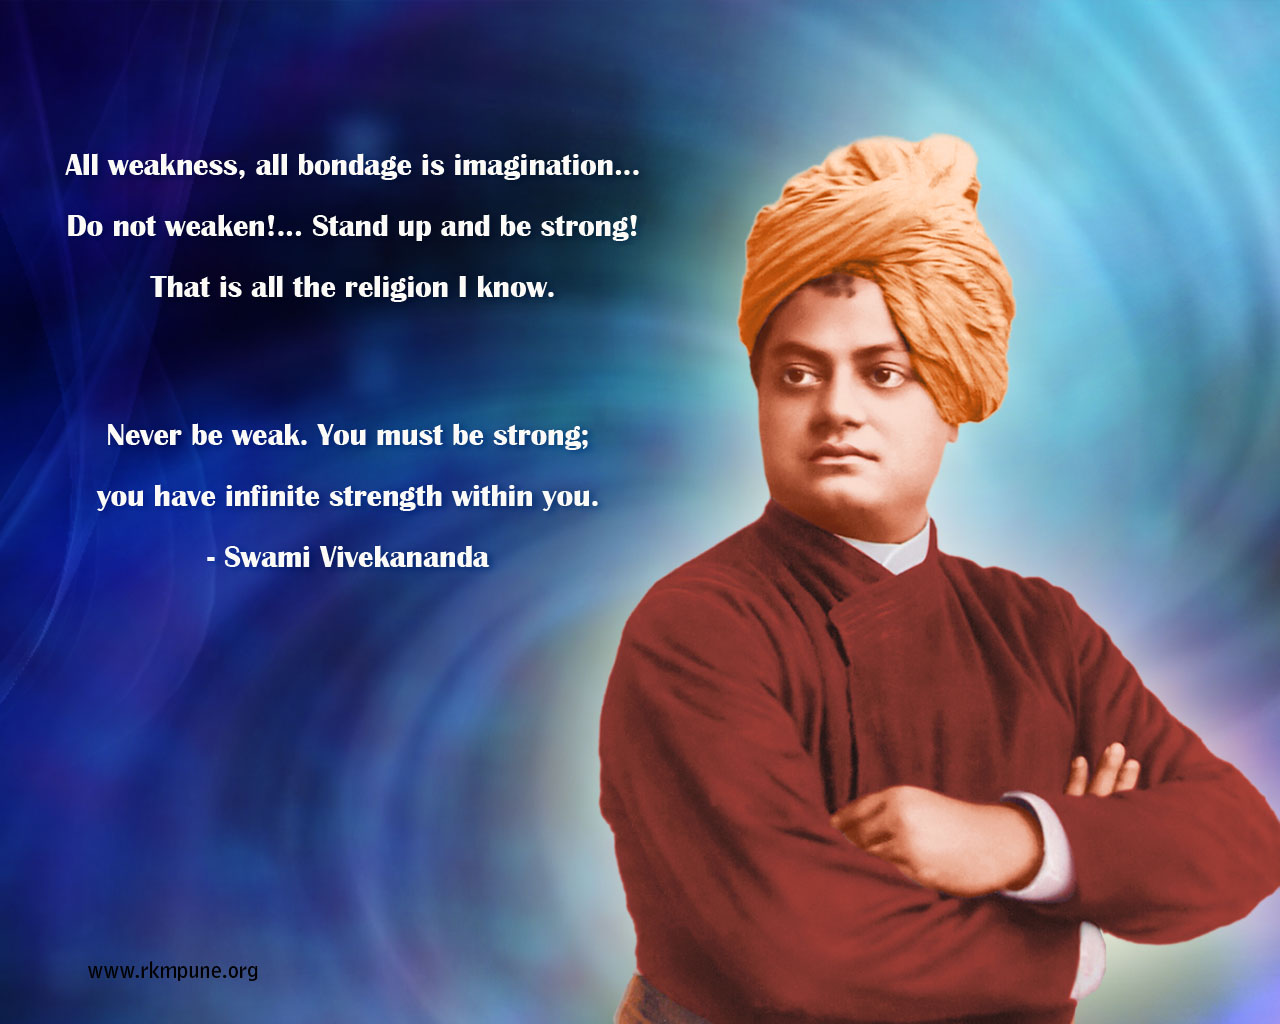 Swami Vivekananda Inspire Wallpapers Download ~ Spoon